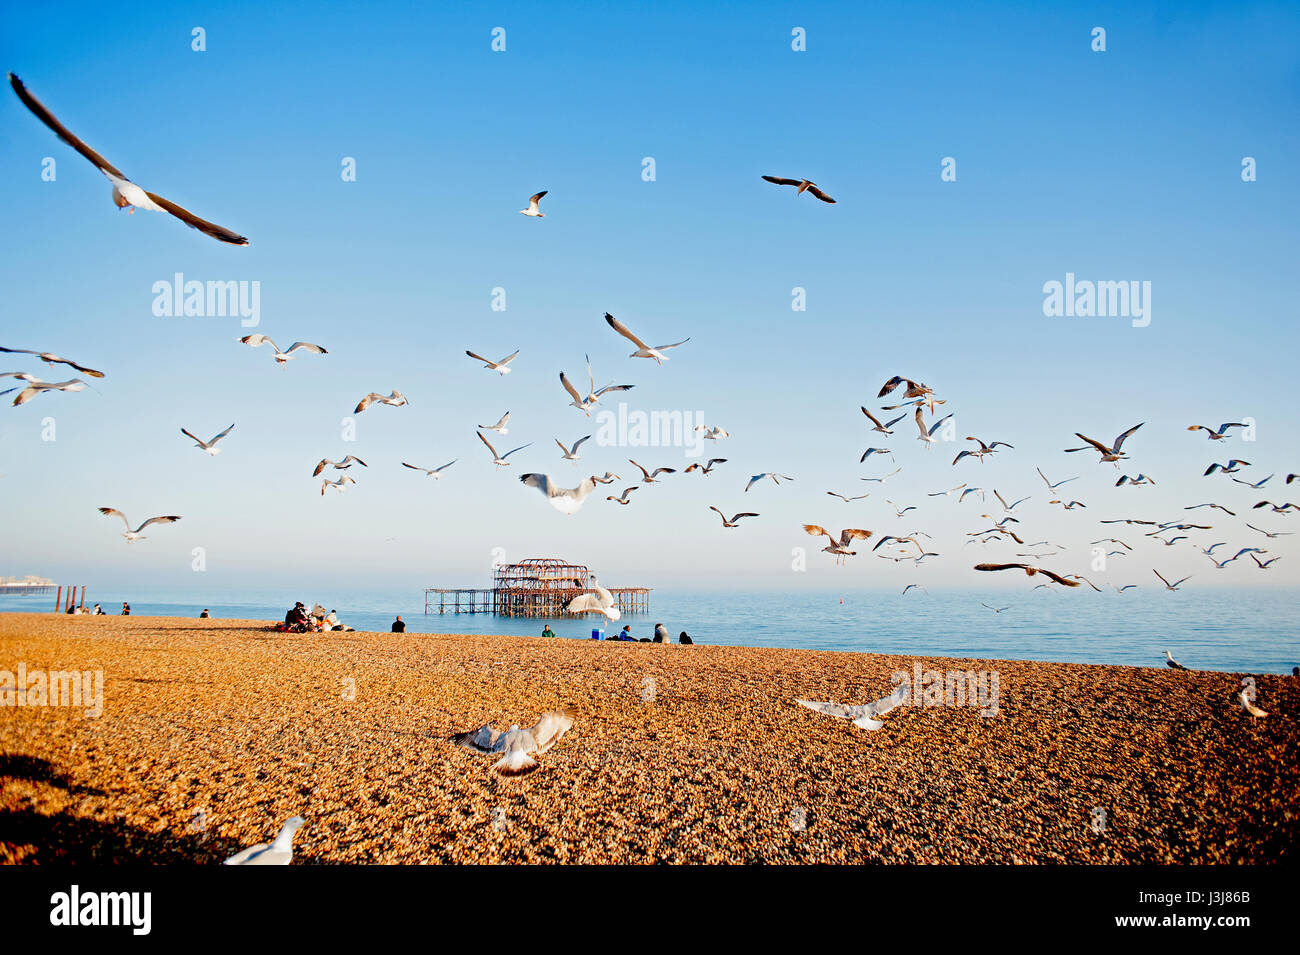 A flock of seagulls flies over Brighton beach on the south coast of England with the ruins of the famous West Pier Stock Photo